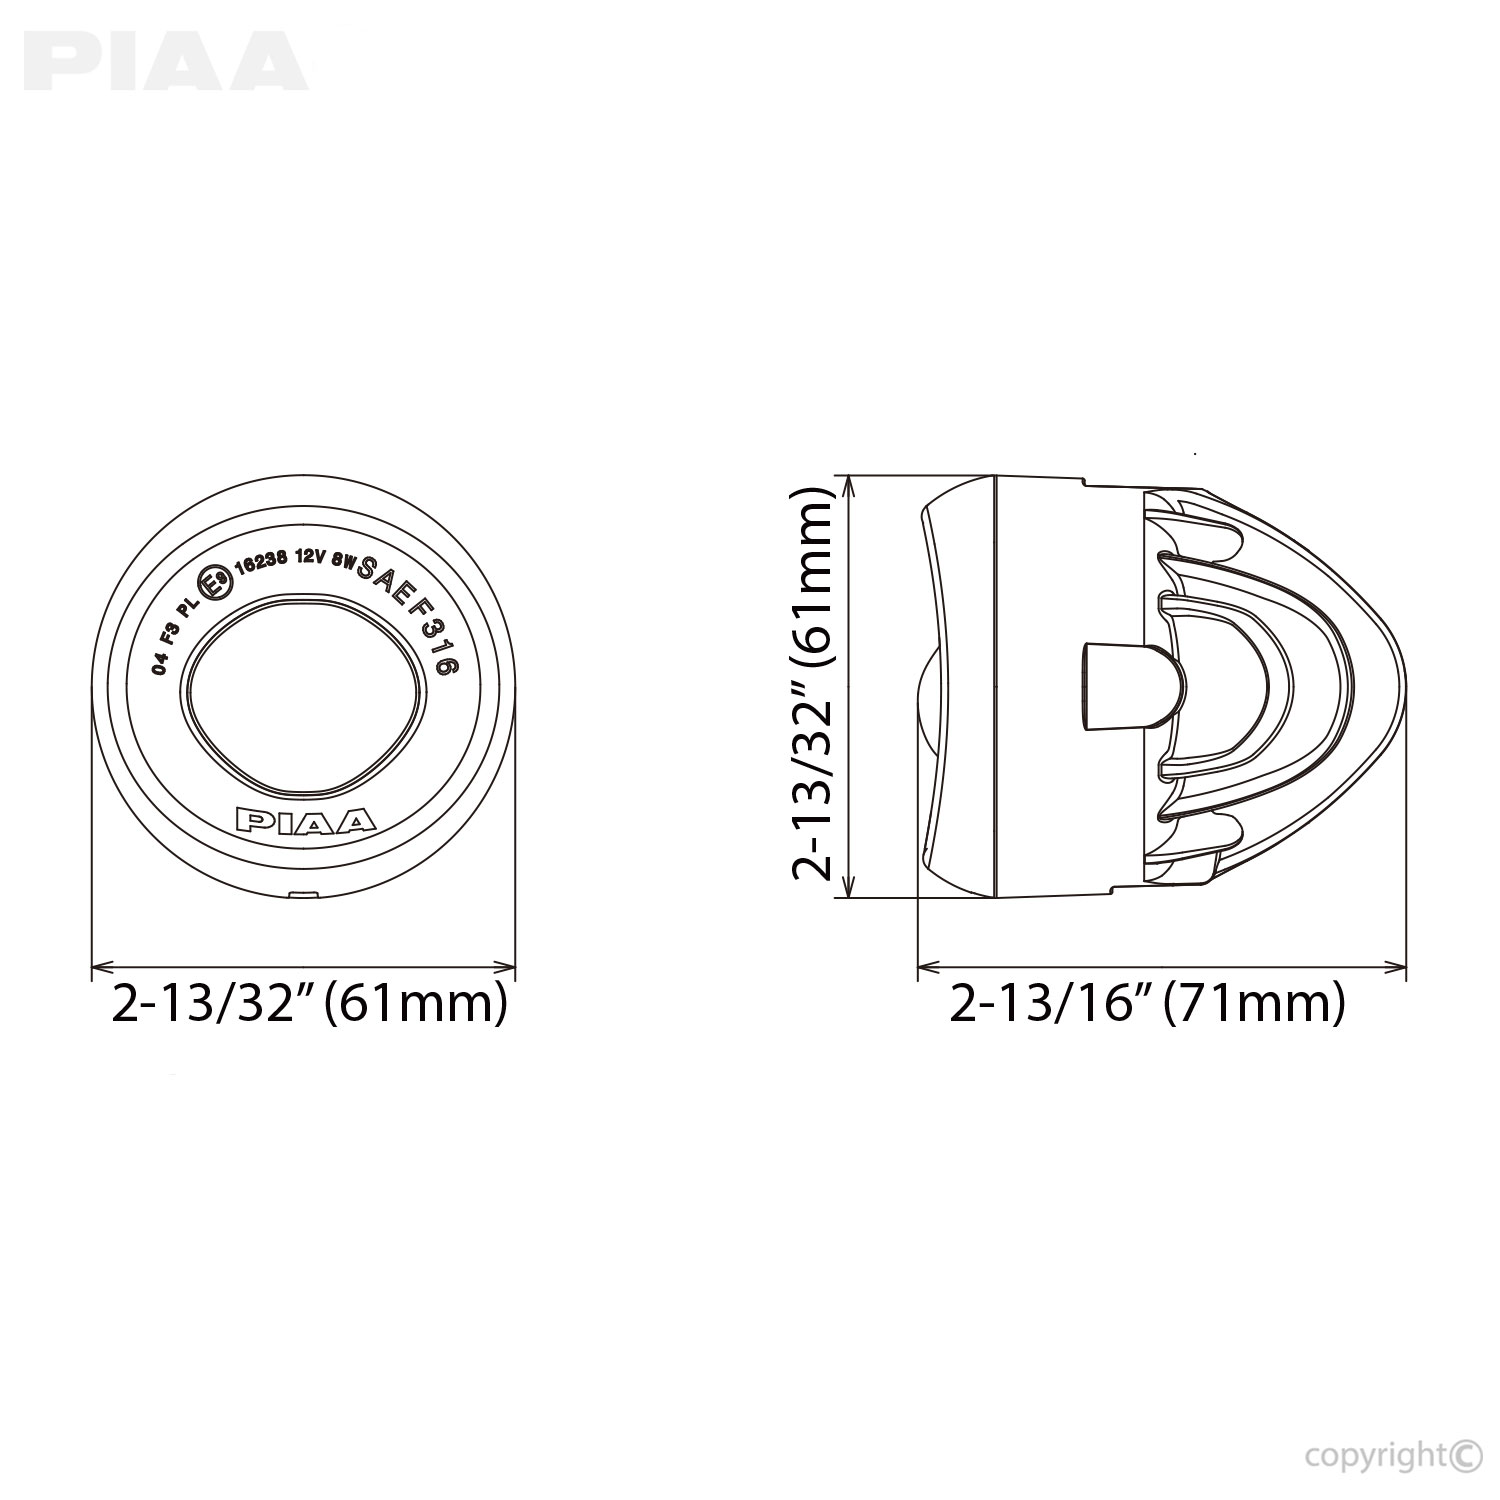 medium resolution of piaa led lights for bmw motorcyclesbmw 1100p 2 40